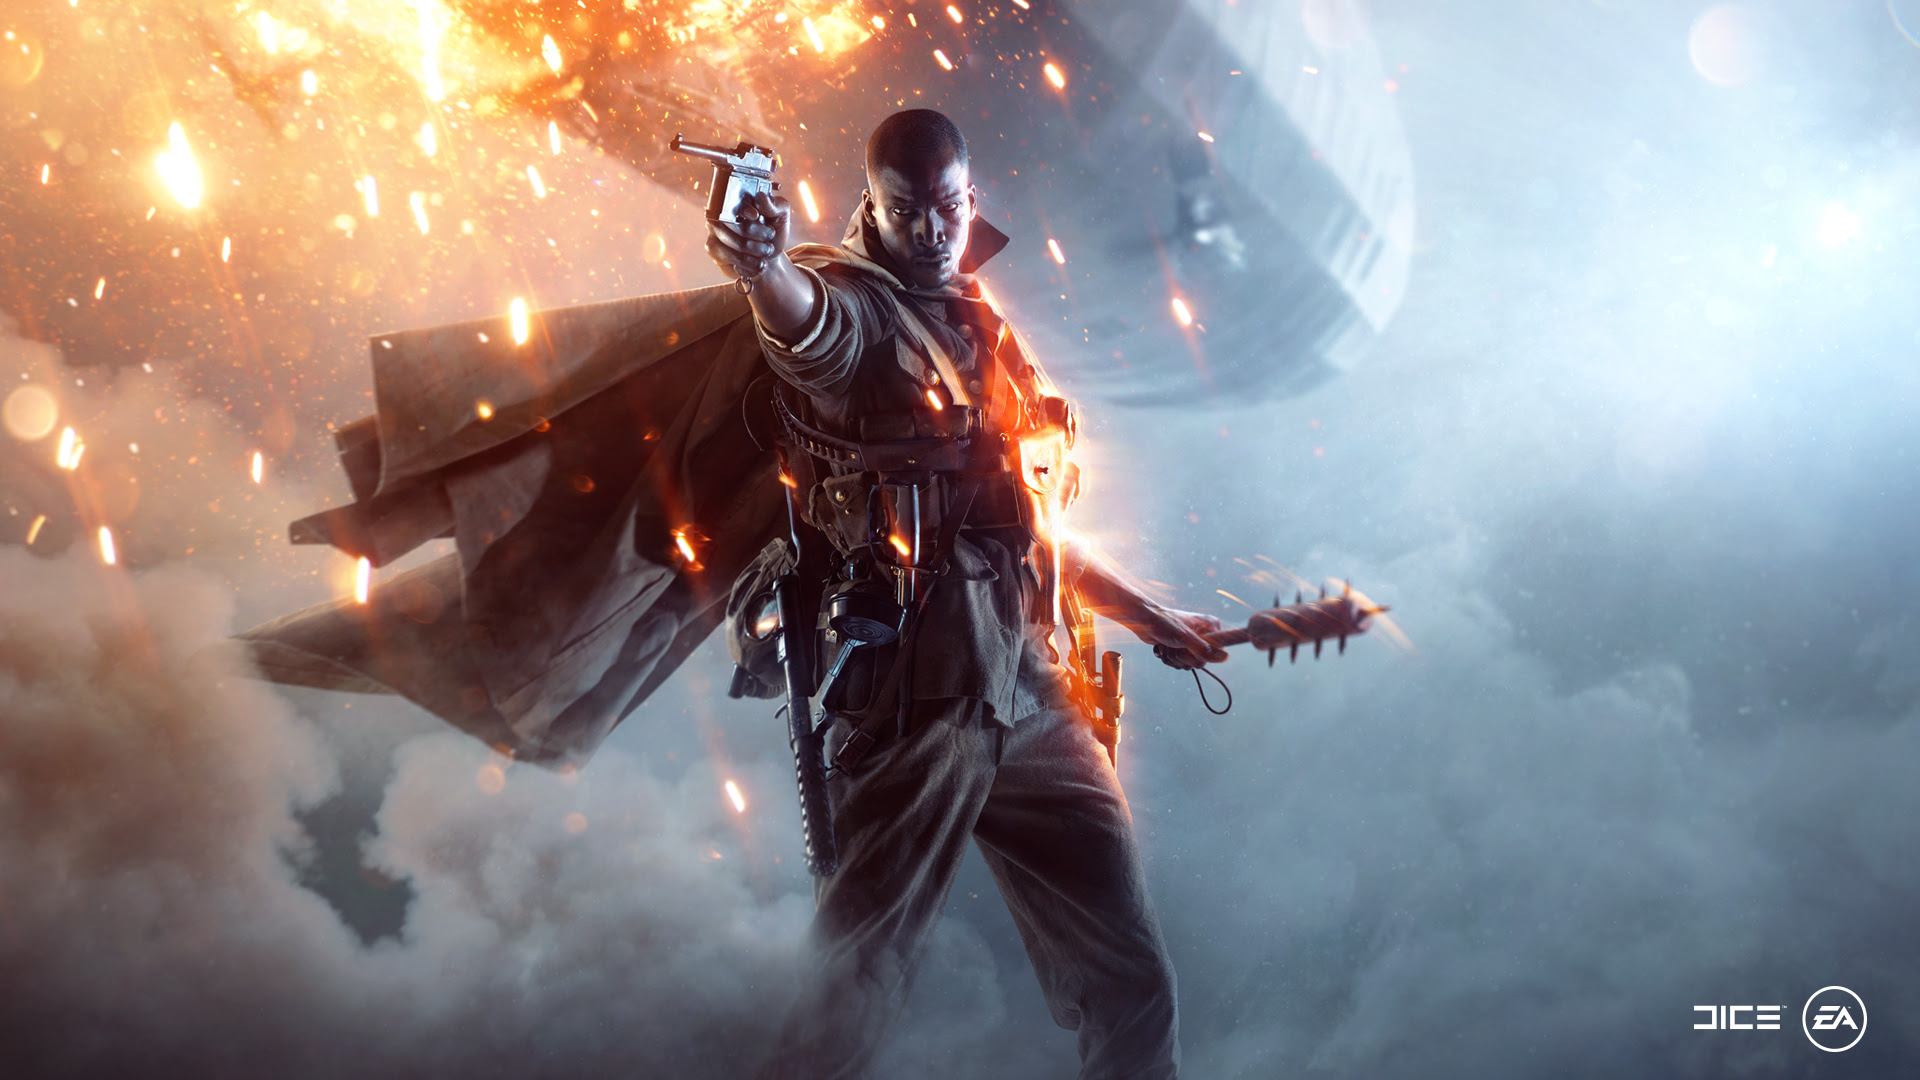 Battlefield 1 Wallpapers For Pc Mobile And Tablets